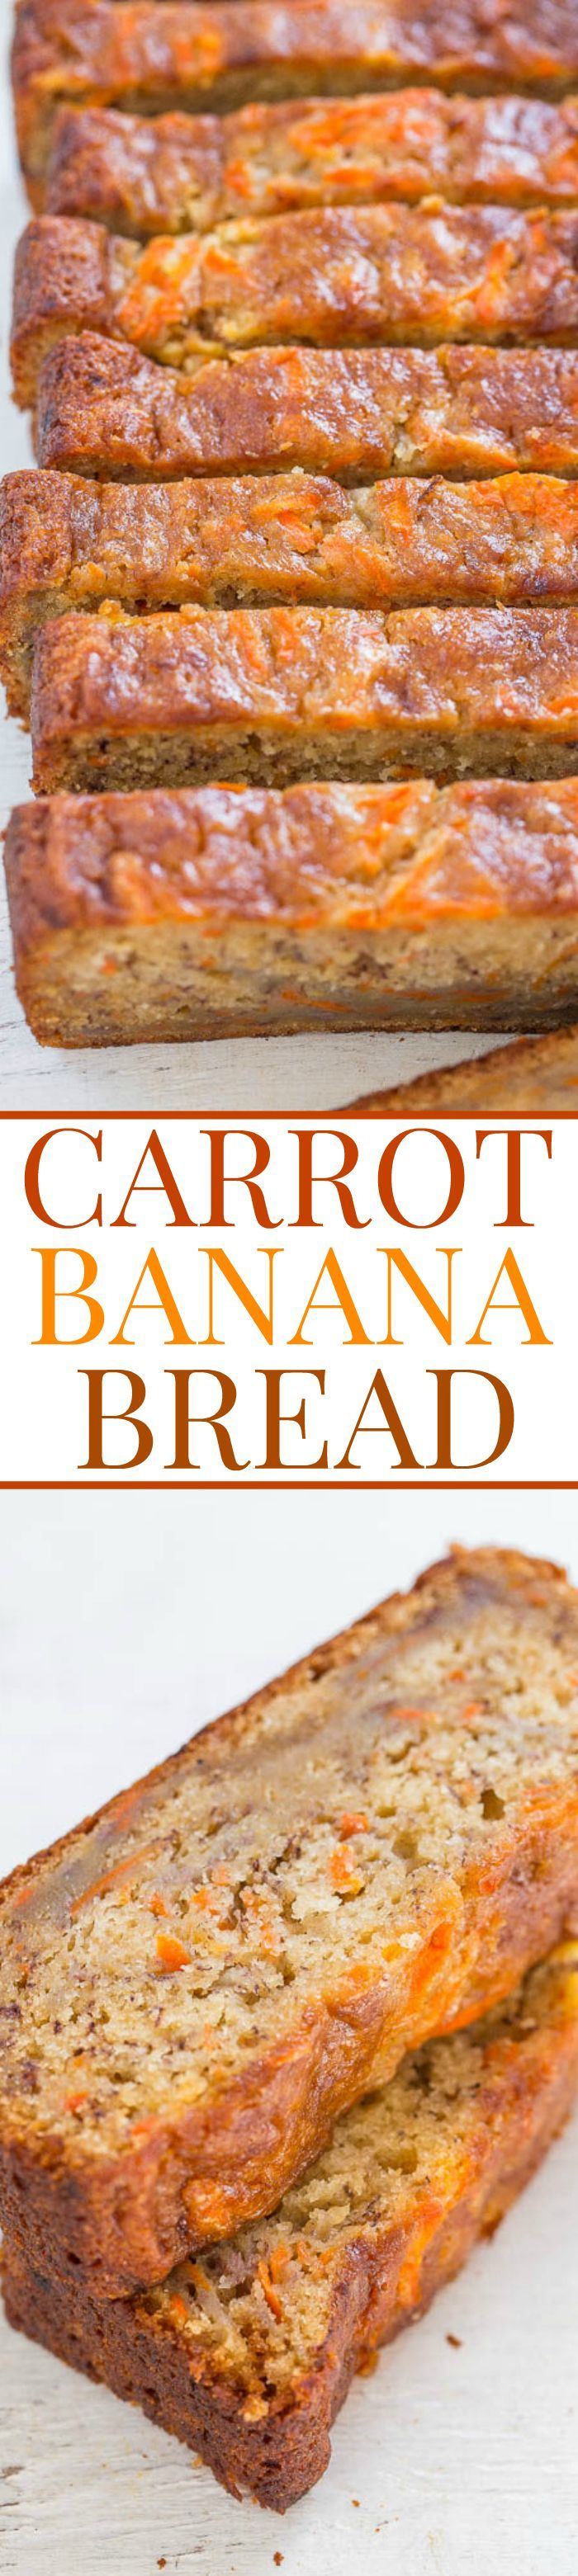 I have every possible combination of carrot + apple + zucchini + blueberry + banana quickbread. Or so I thought. But I don't have this combo. Springtime and Easter make me think of carrot cake, which I love, but since I have multiple recipes for it I wanted to change things up a bit. Enter this super …